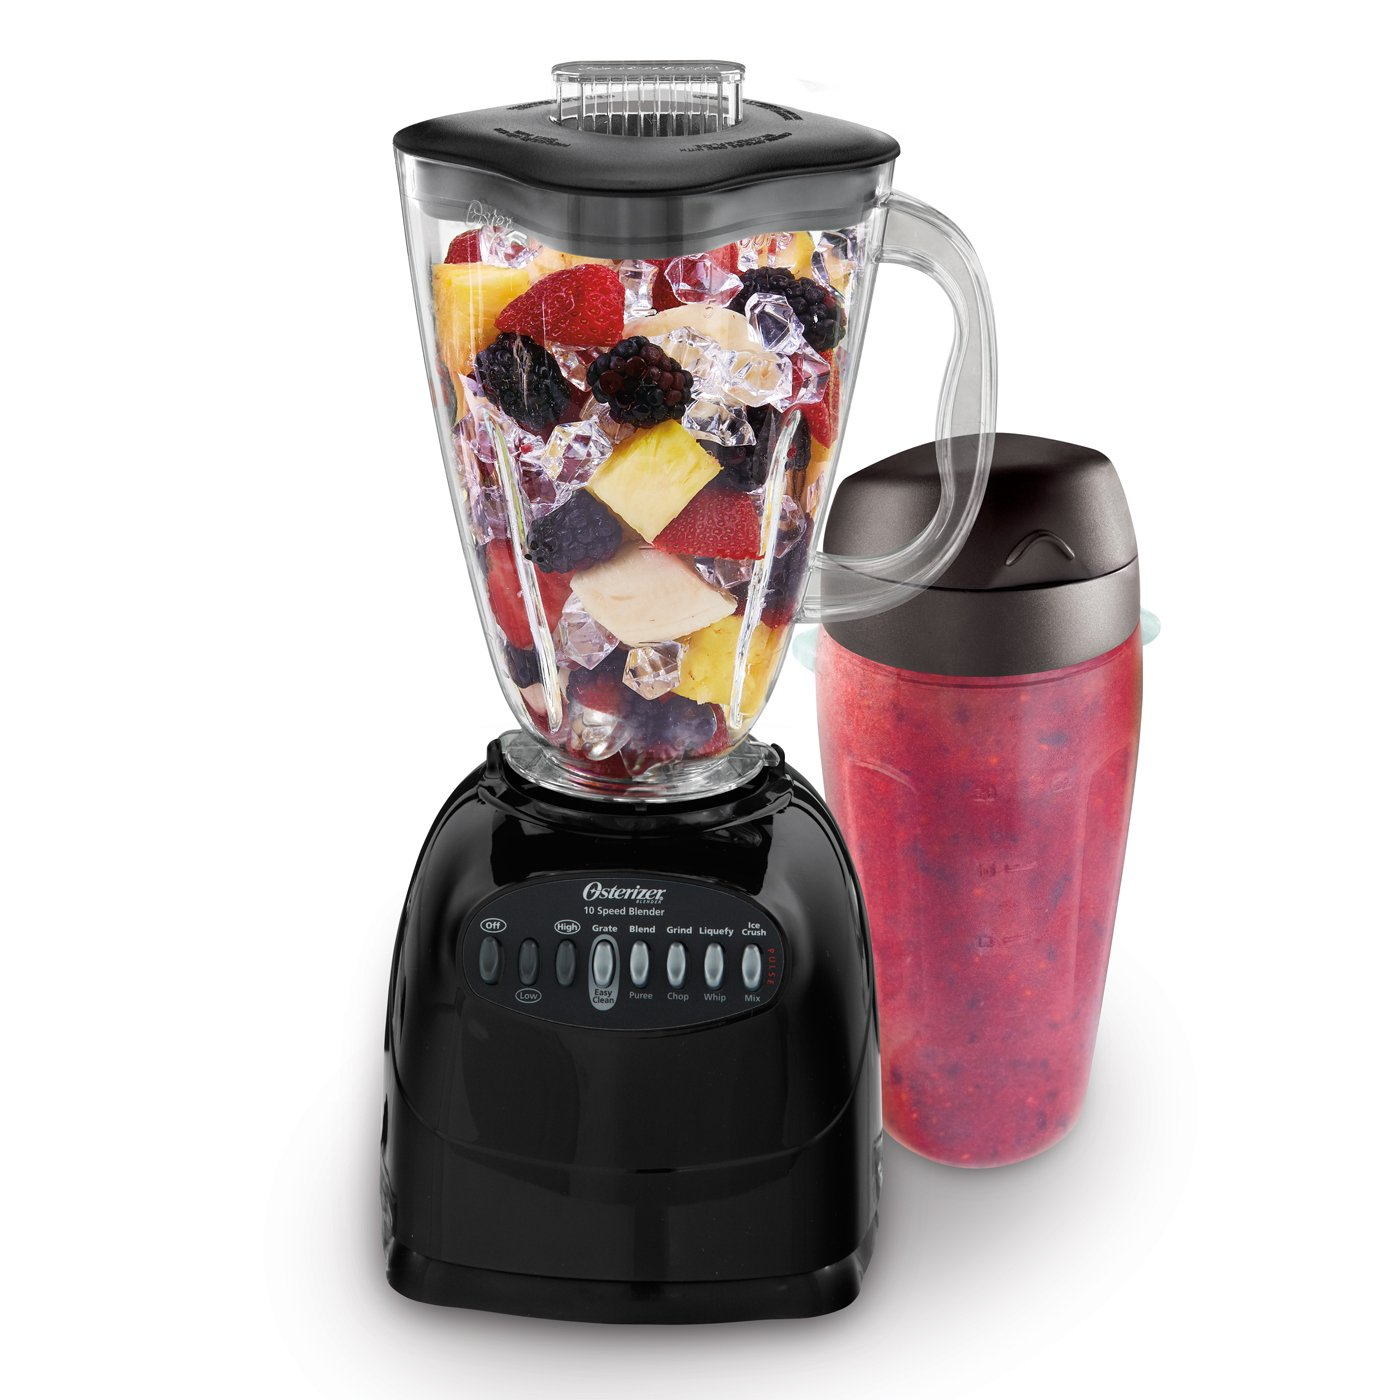 Oster Simple Blend 100 10-Speed Blender with Blend and Go Cup, Black by Oster